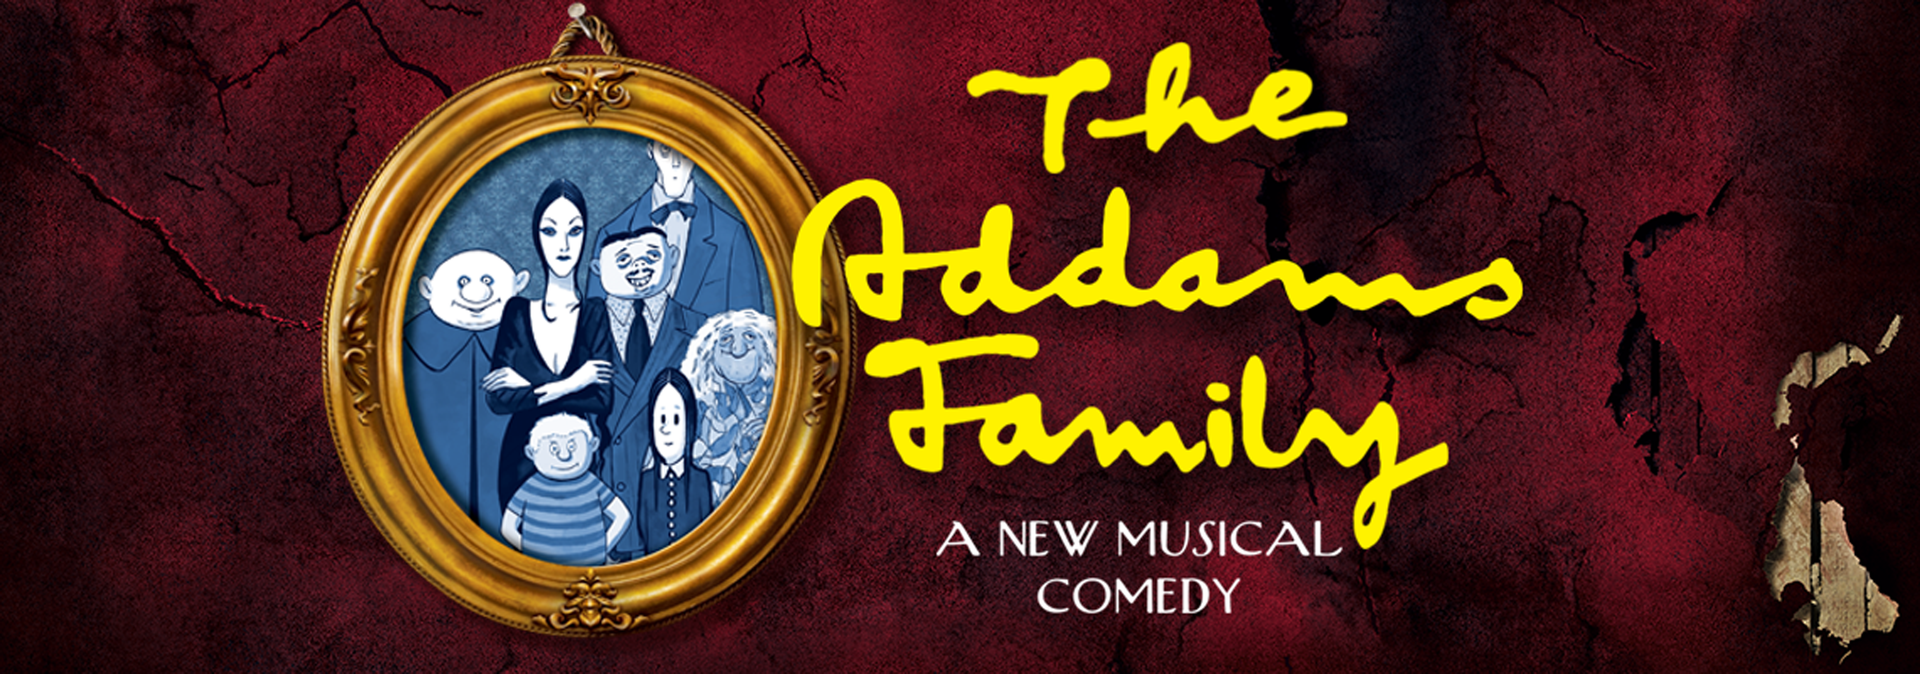 """The Westlake Players present""""The Addams Family."""" Performancesare March 29, 30 at 8:00 pm., March 31 at 1:00 pm., April 5 and April 6 at 8:00 pm. at the WHS Theater."""